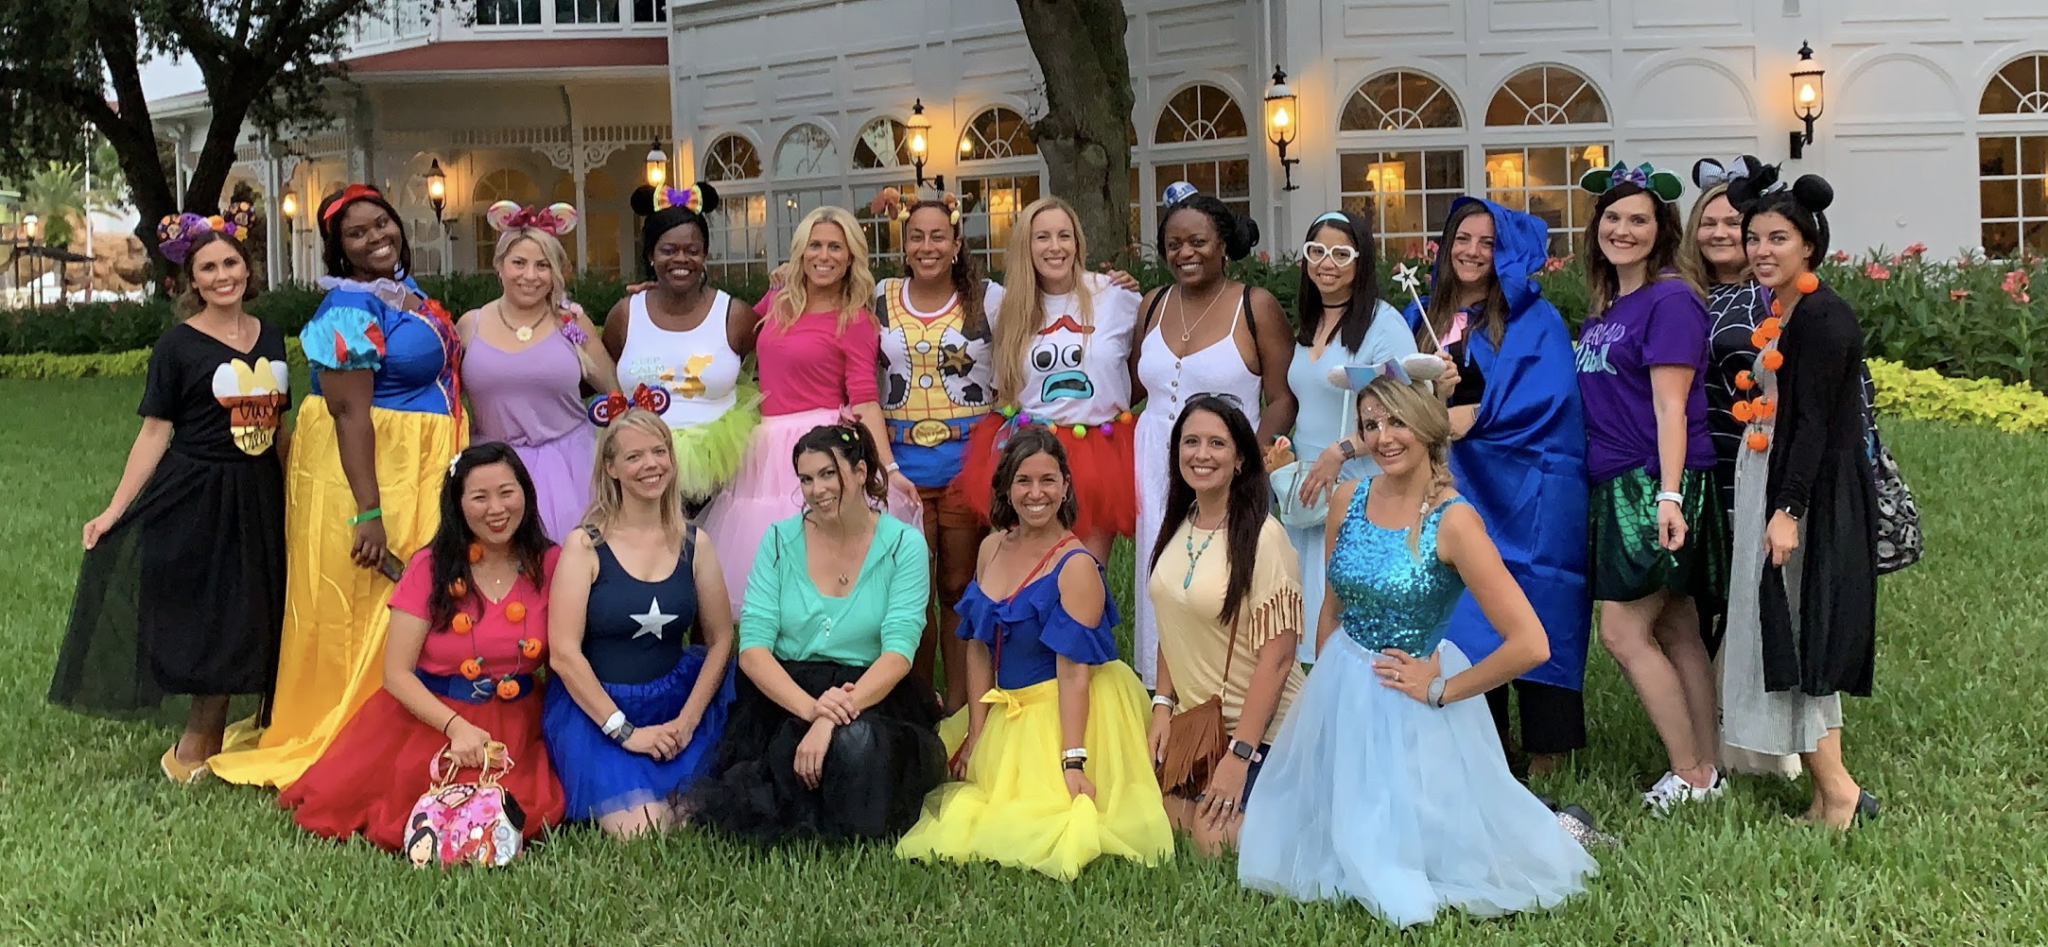 disney cosplay for adults